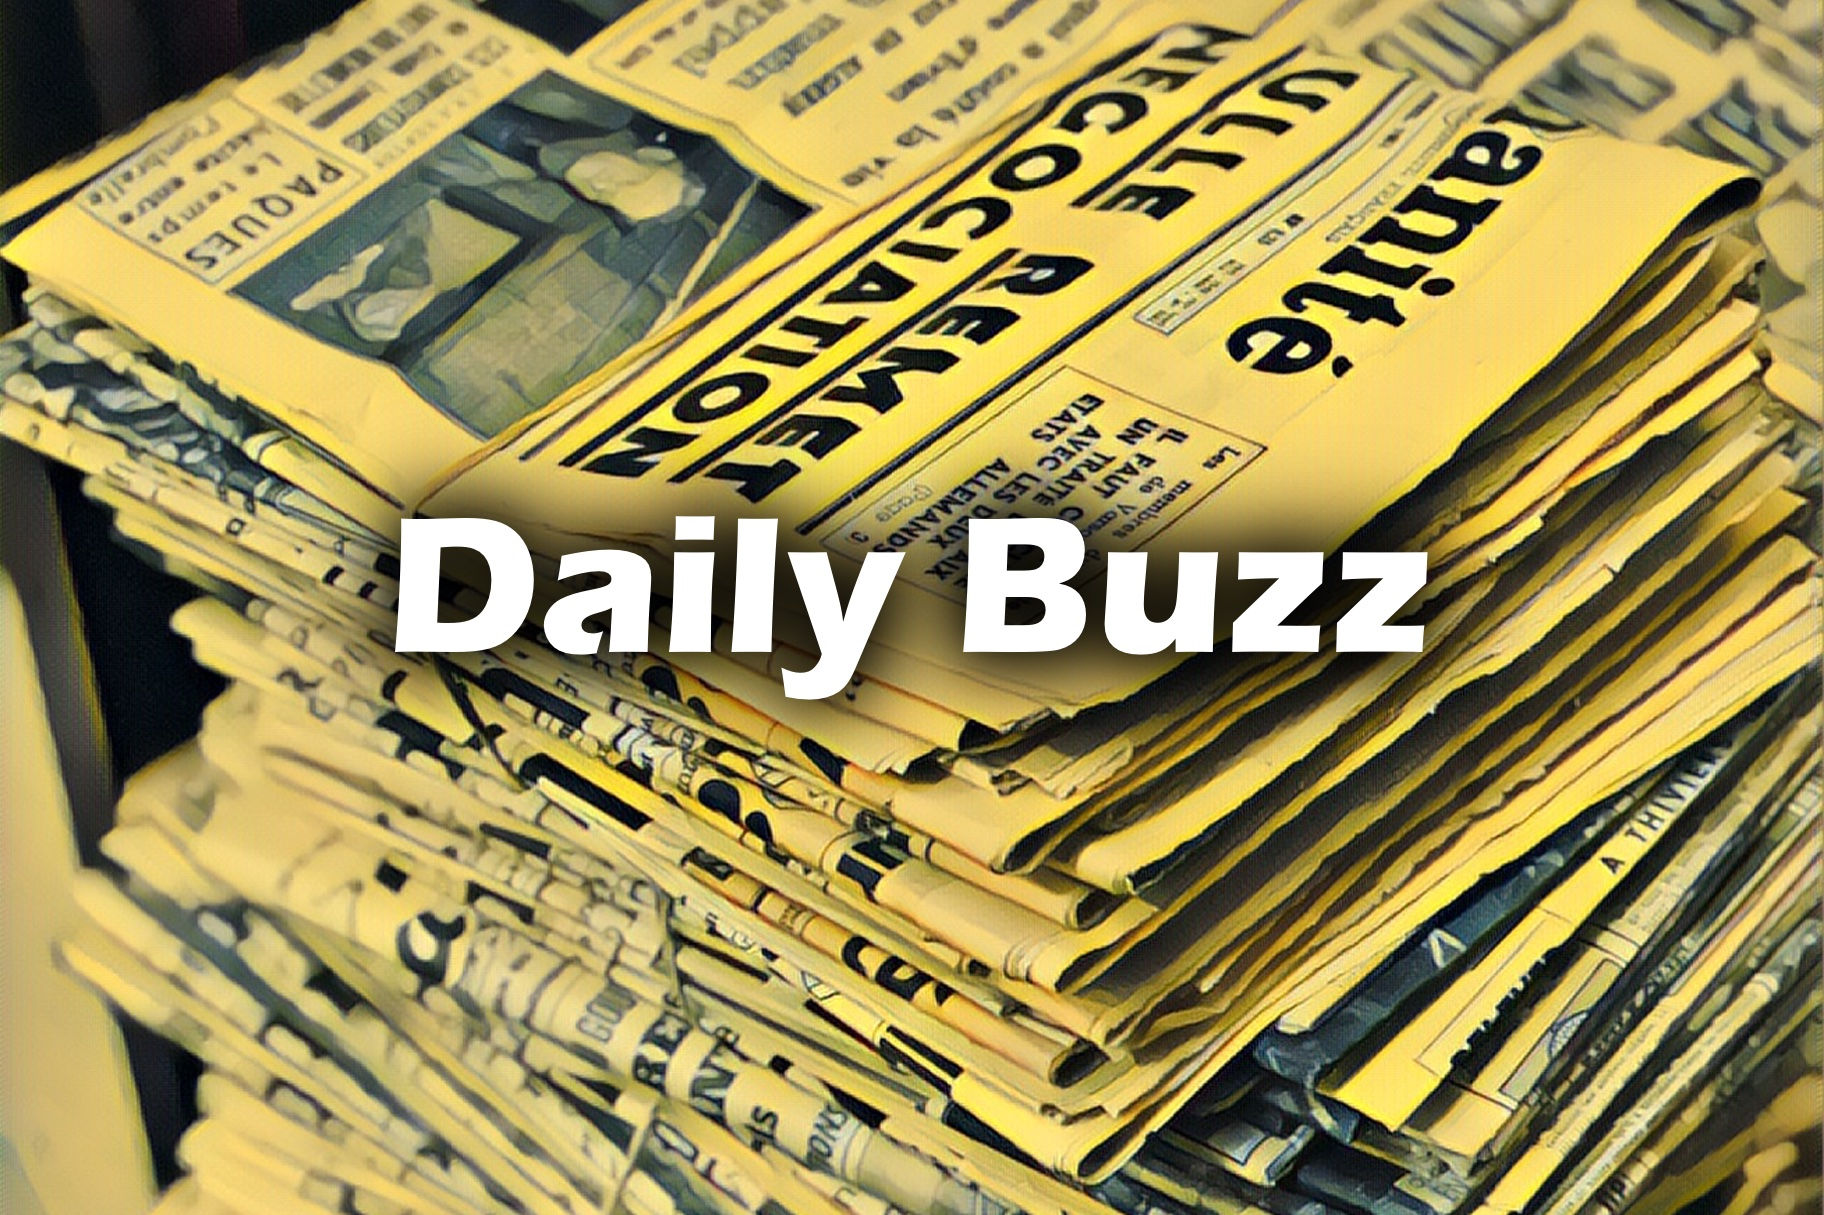 DailyBuzz Thursday 14 June 2018